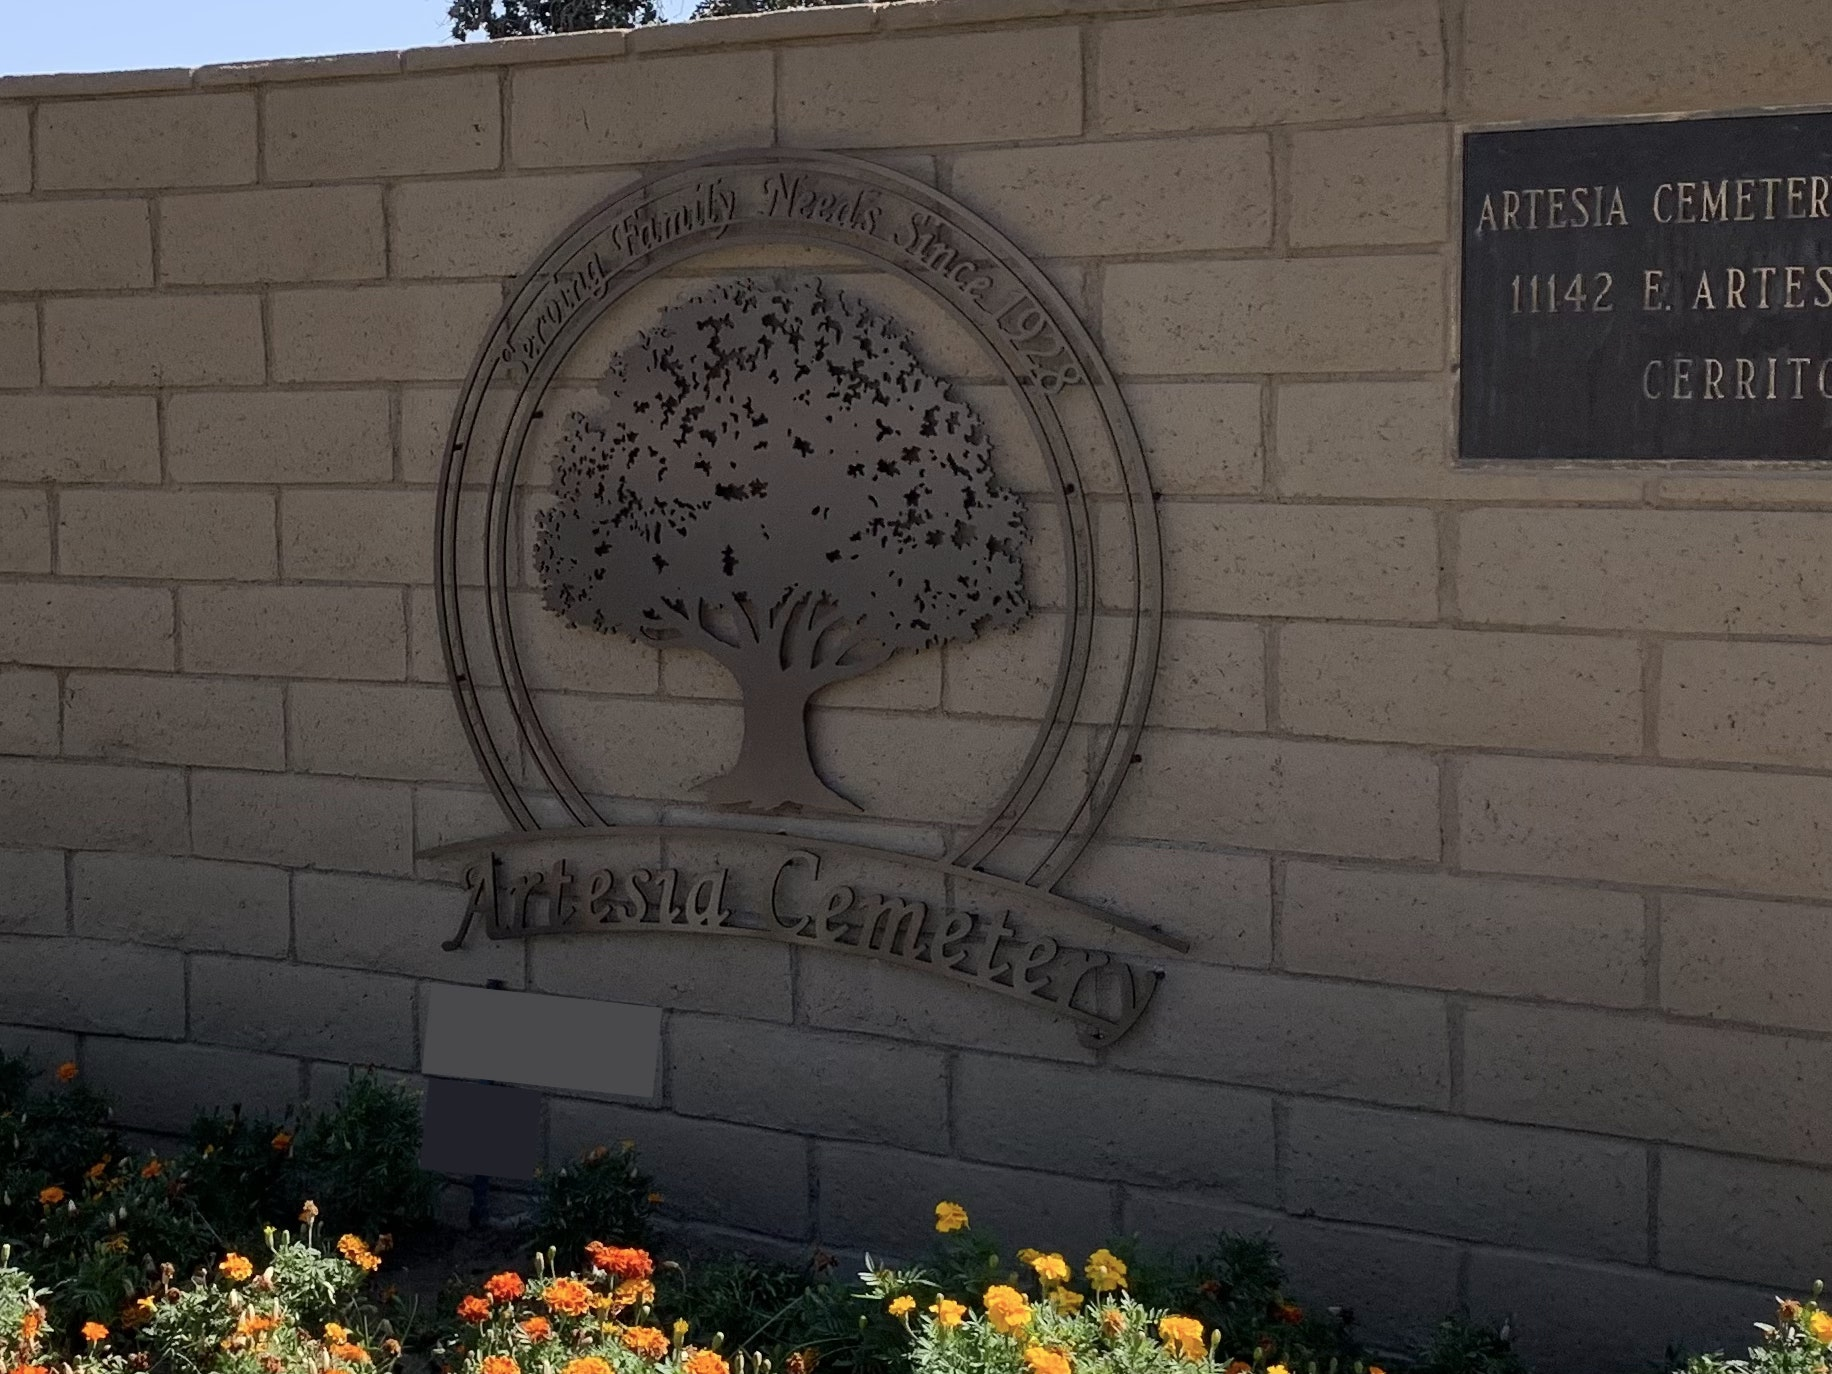 Cemetery Logo at entrance of cemetery